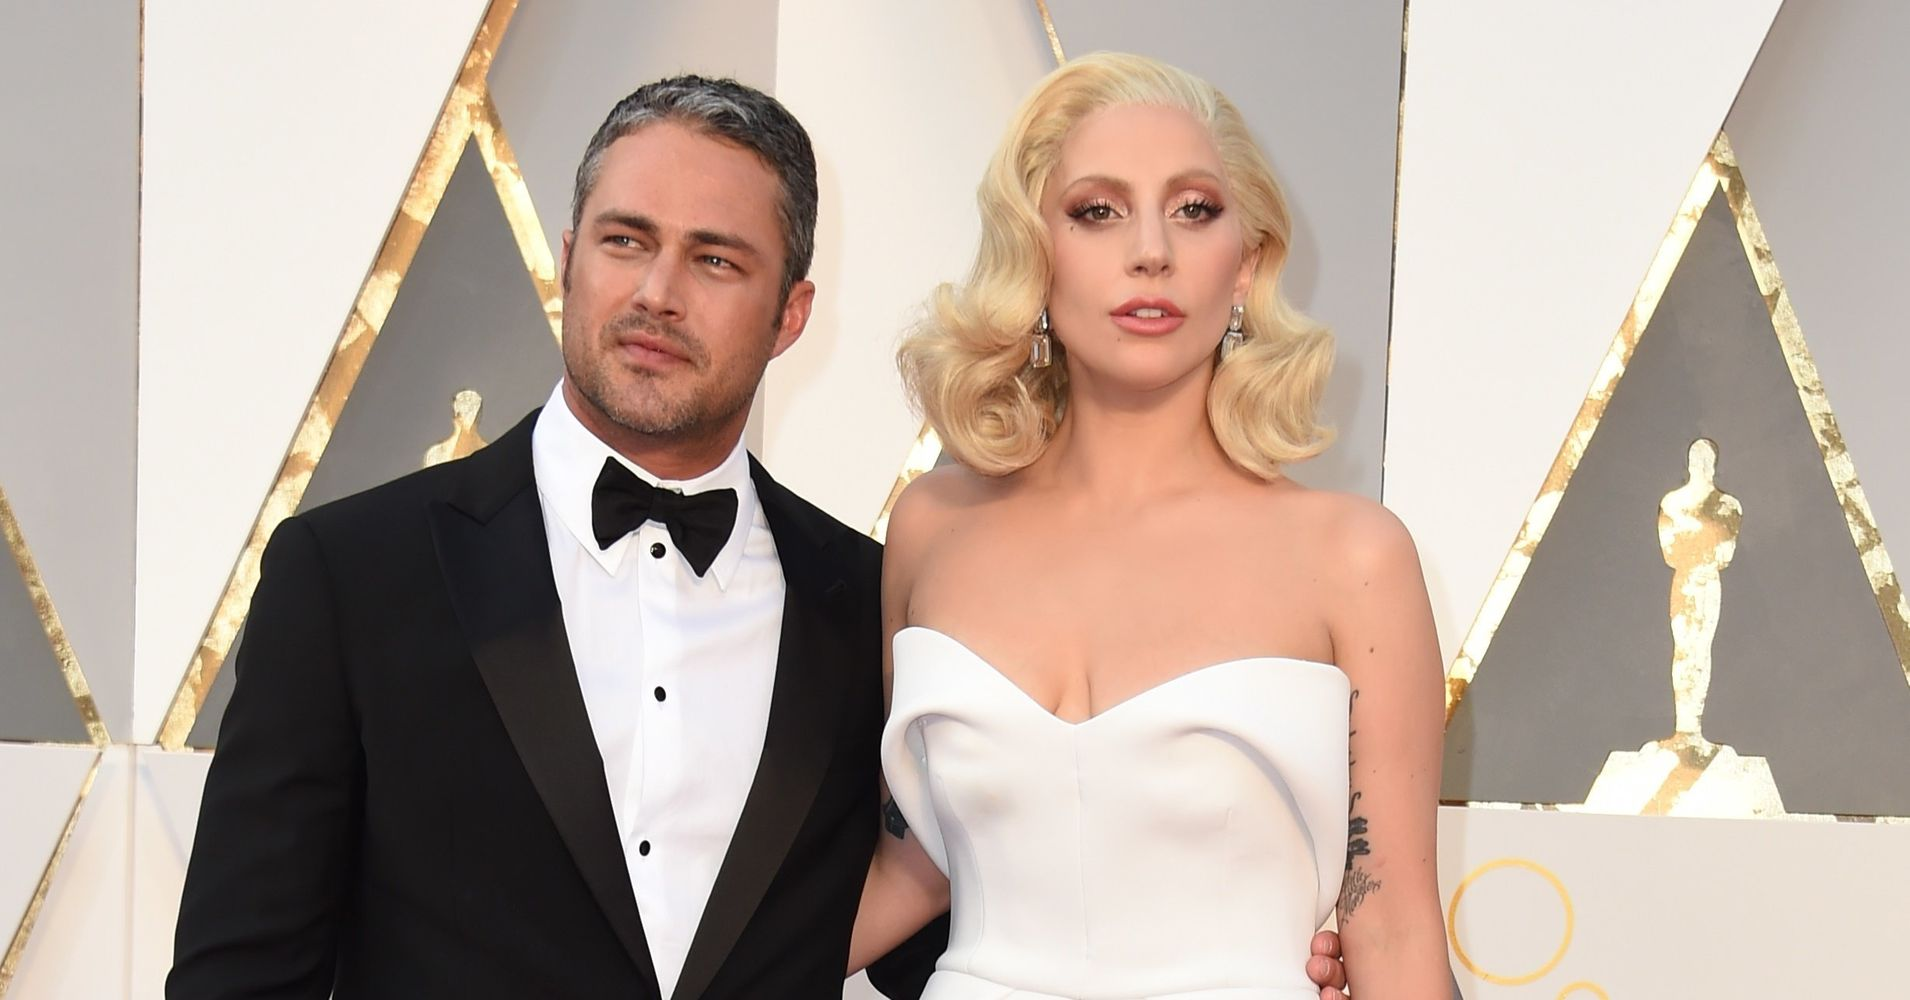 Lady Gaga And Taylor Kinney Give Off Major Wedding Vibes